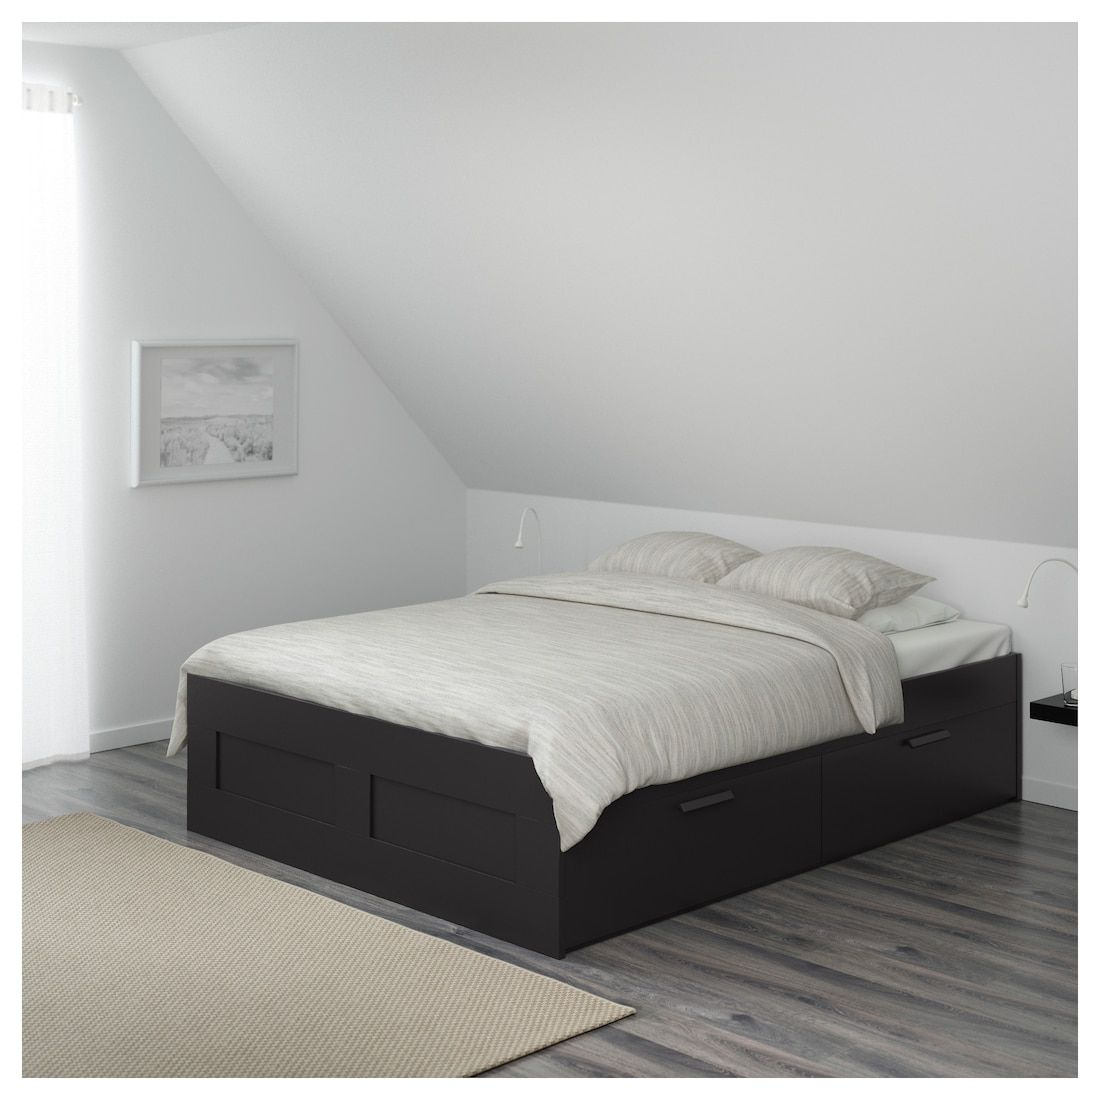 Brimnes Bed Frame With Storage Black Luroy Queen Bed Frame